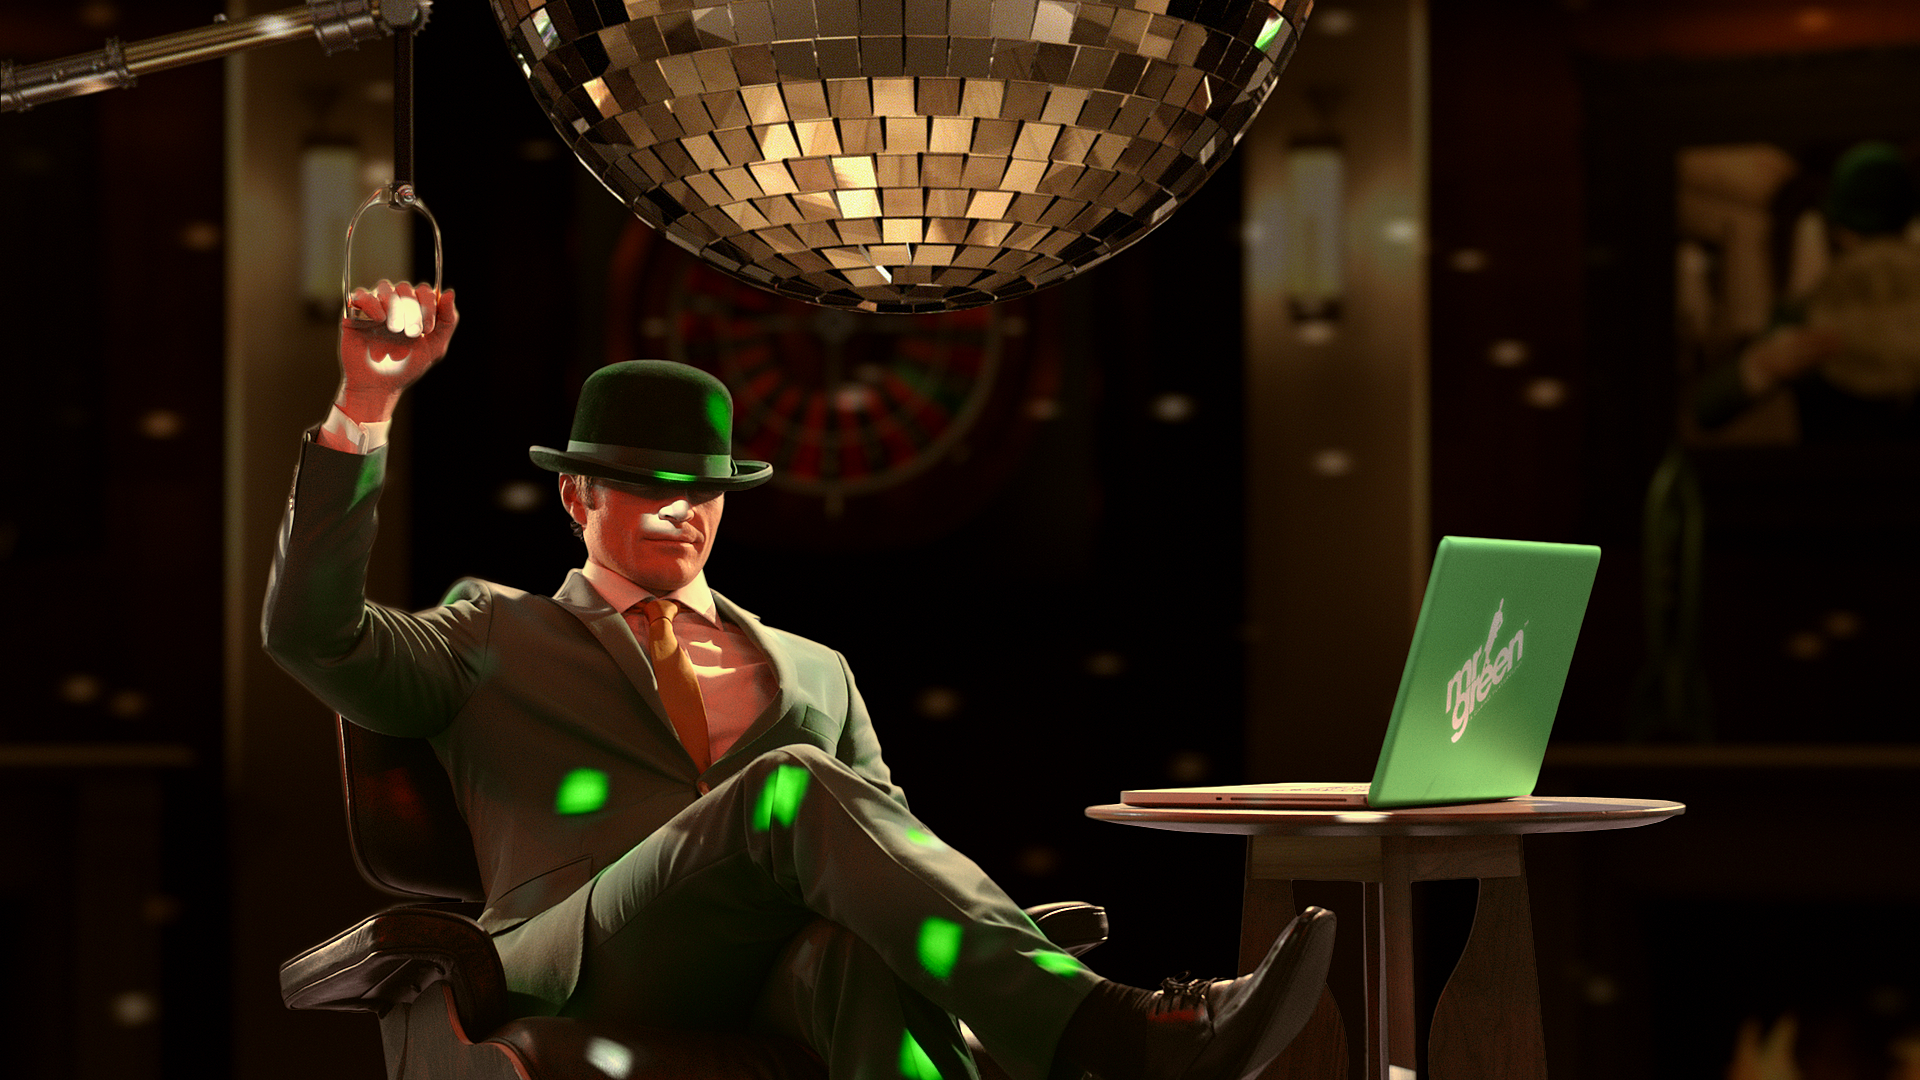 mr green casino sverige